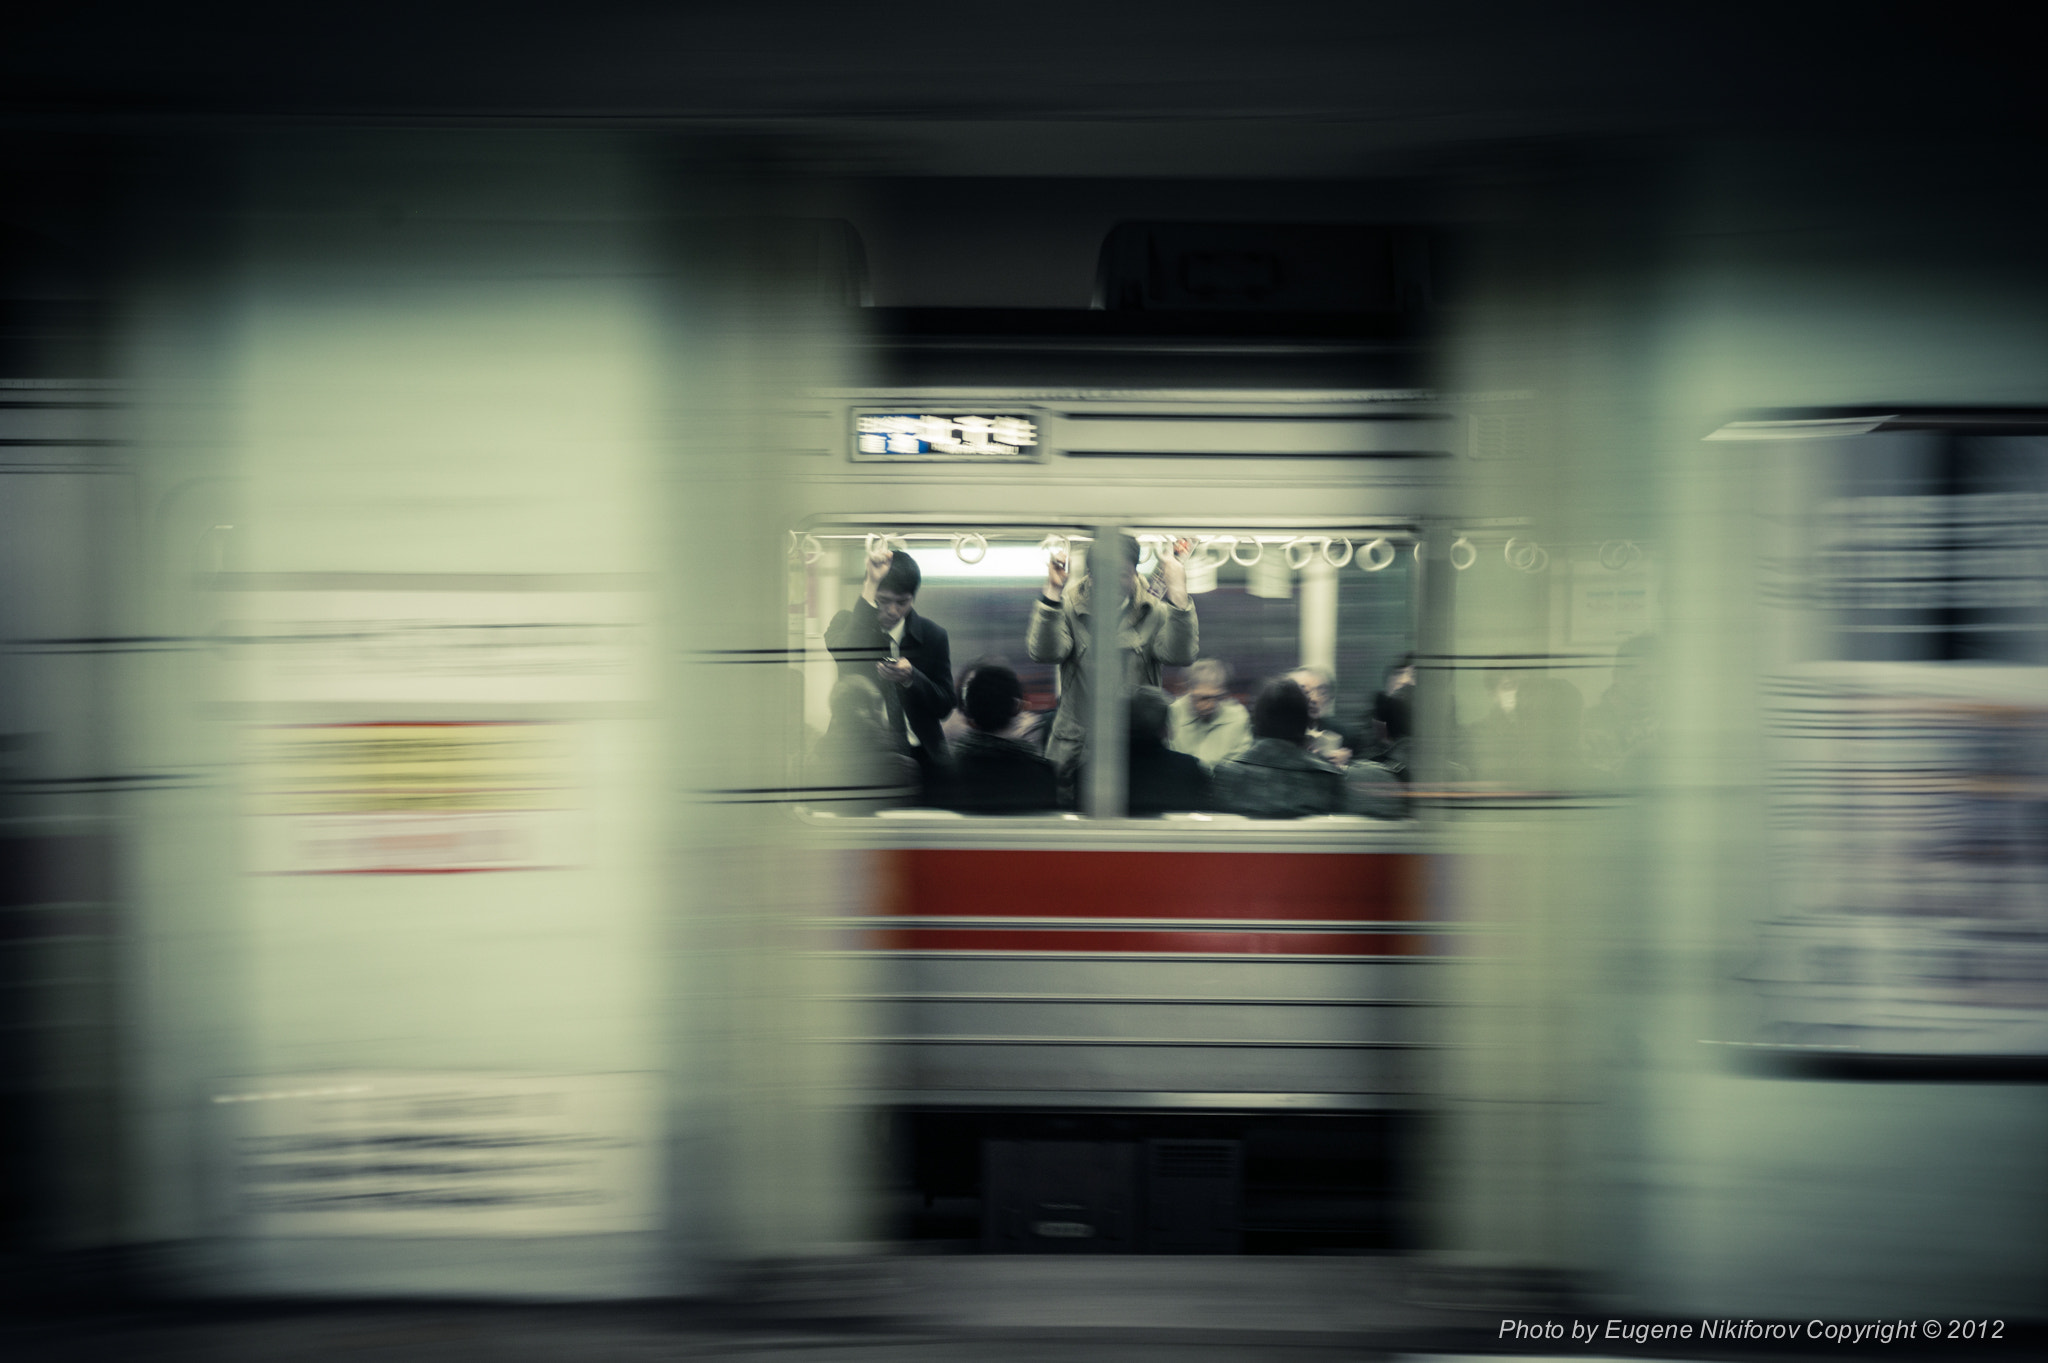 Photograph Passing by, Tokyo Subway by Eugene Nikiforov on 500px